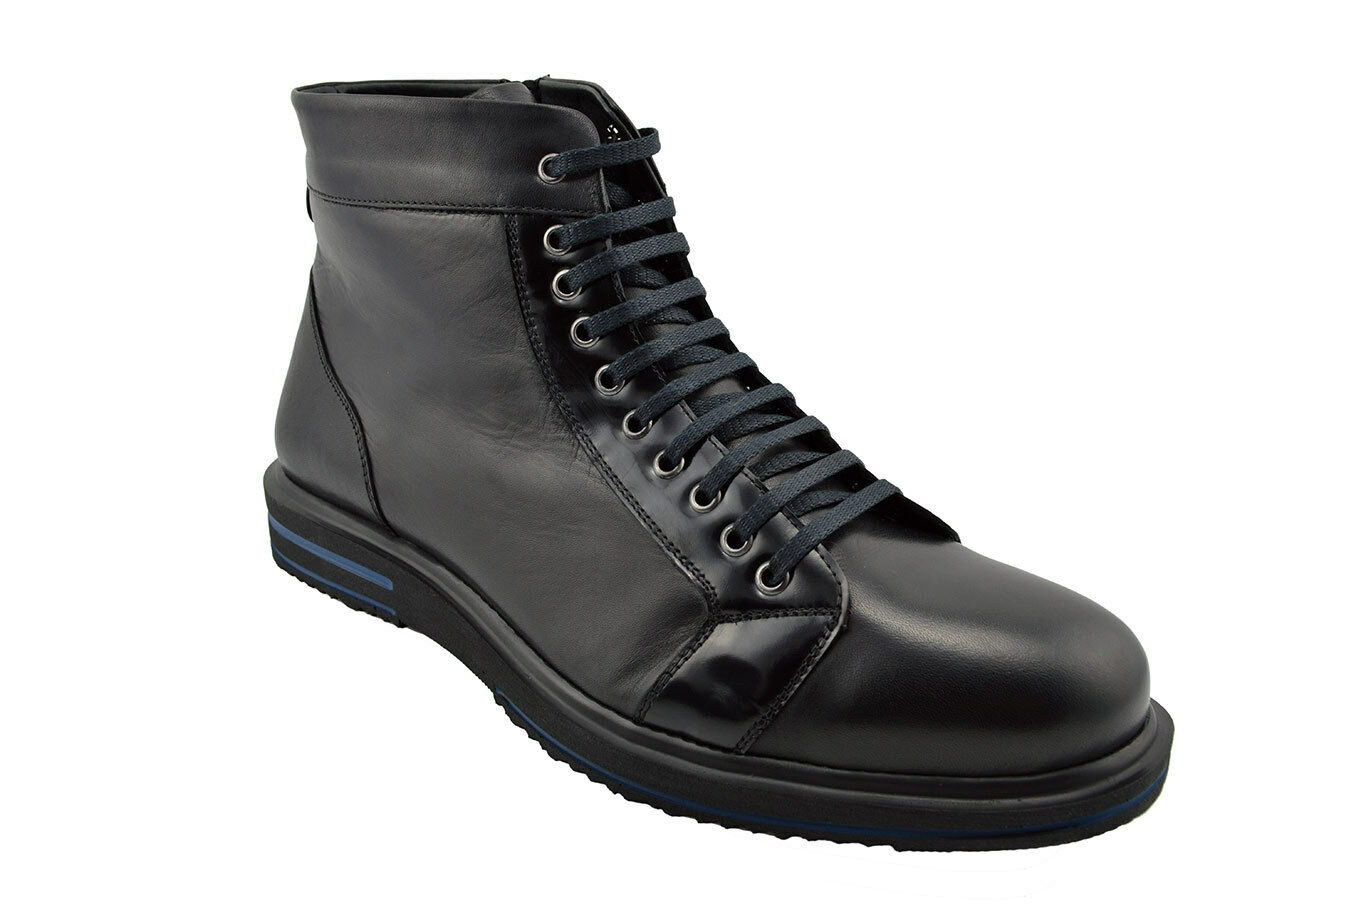 230 MASQLEN Black Calf Leather BIKER Ankle Boots Men shoes NEW COLLECTION